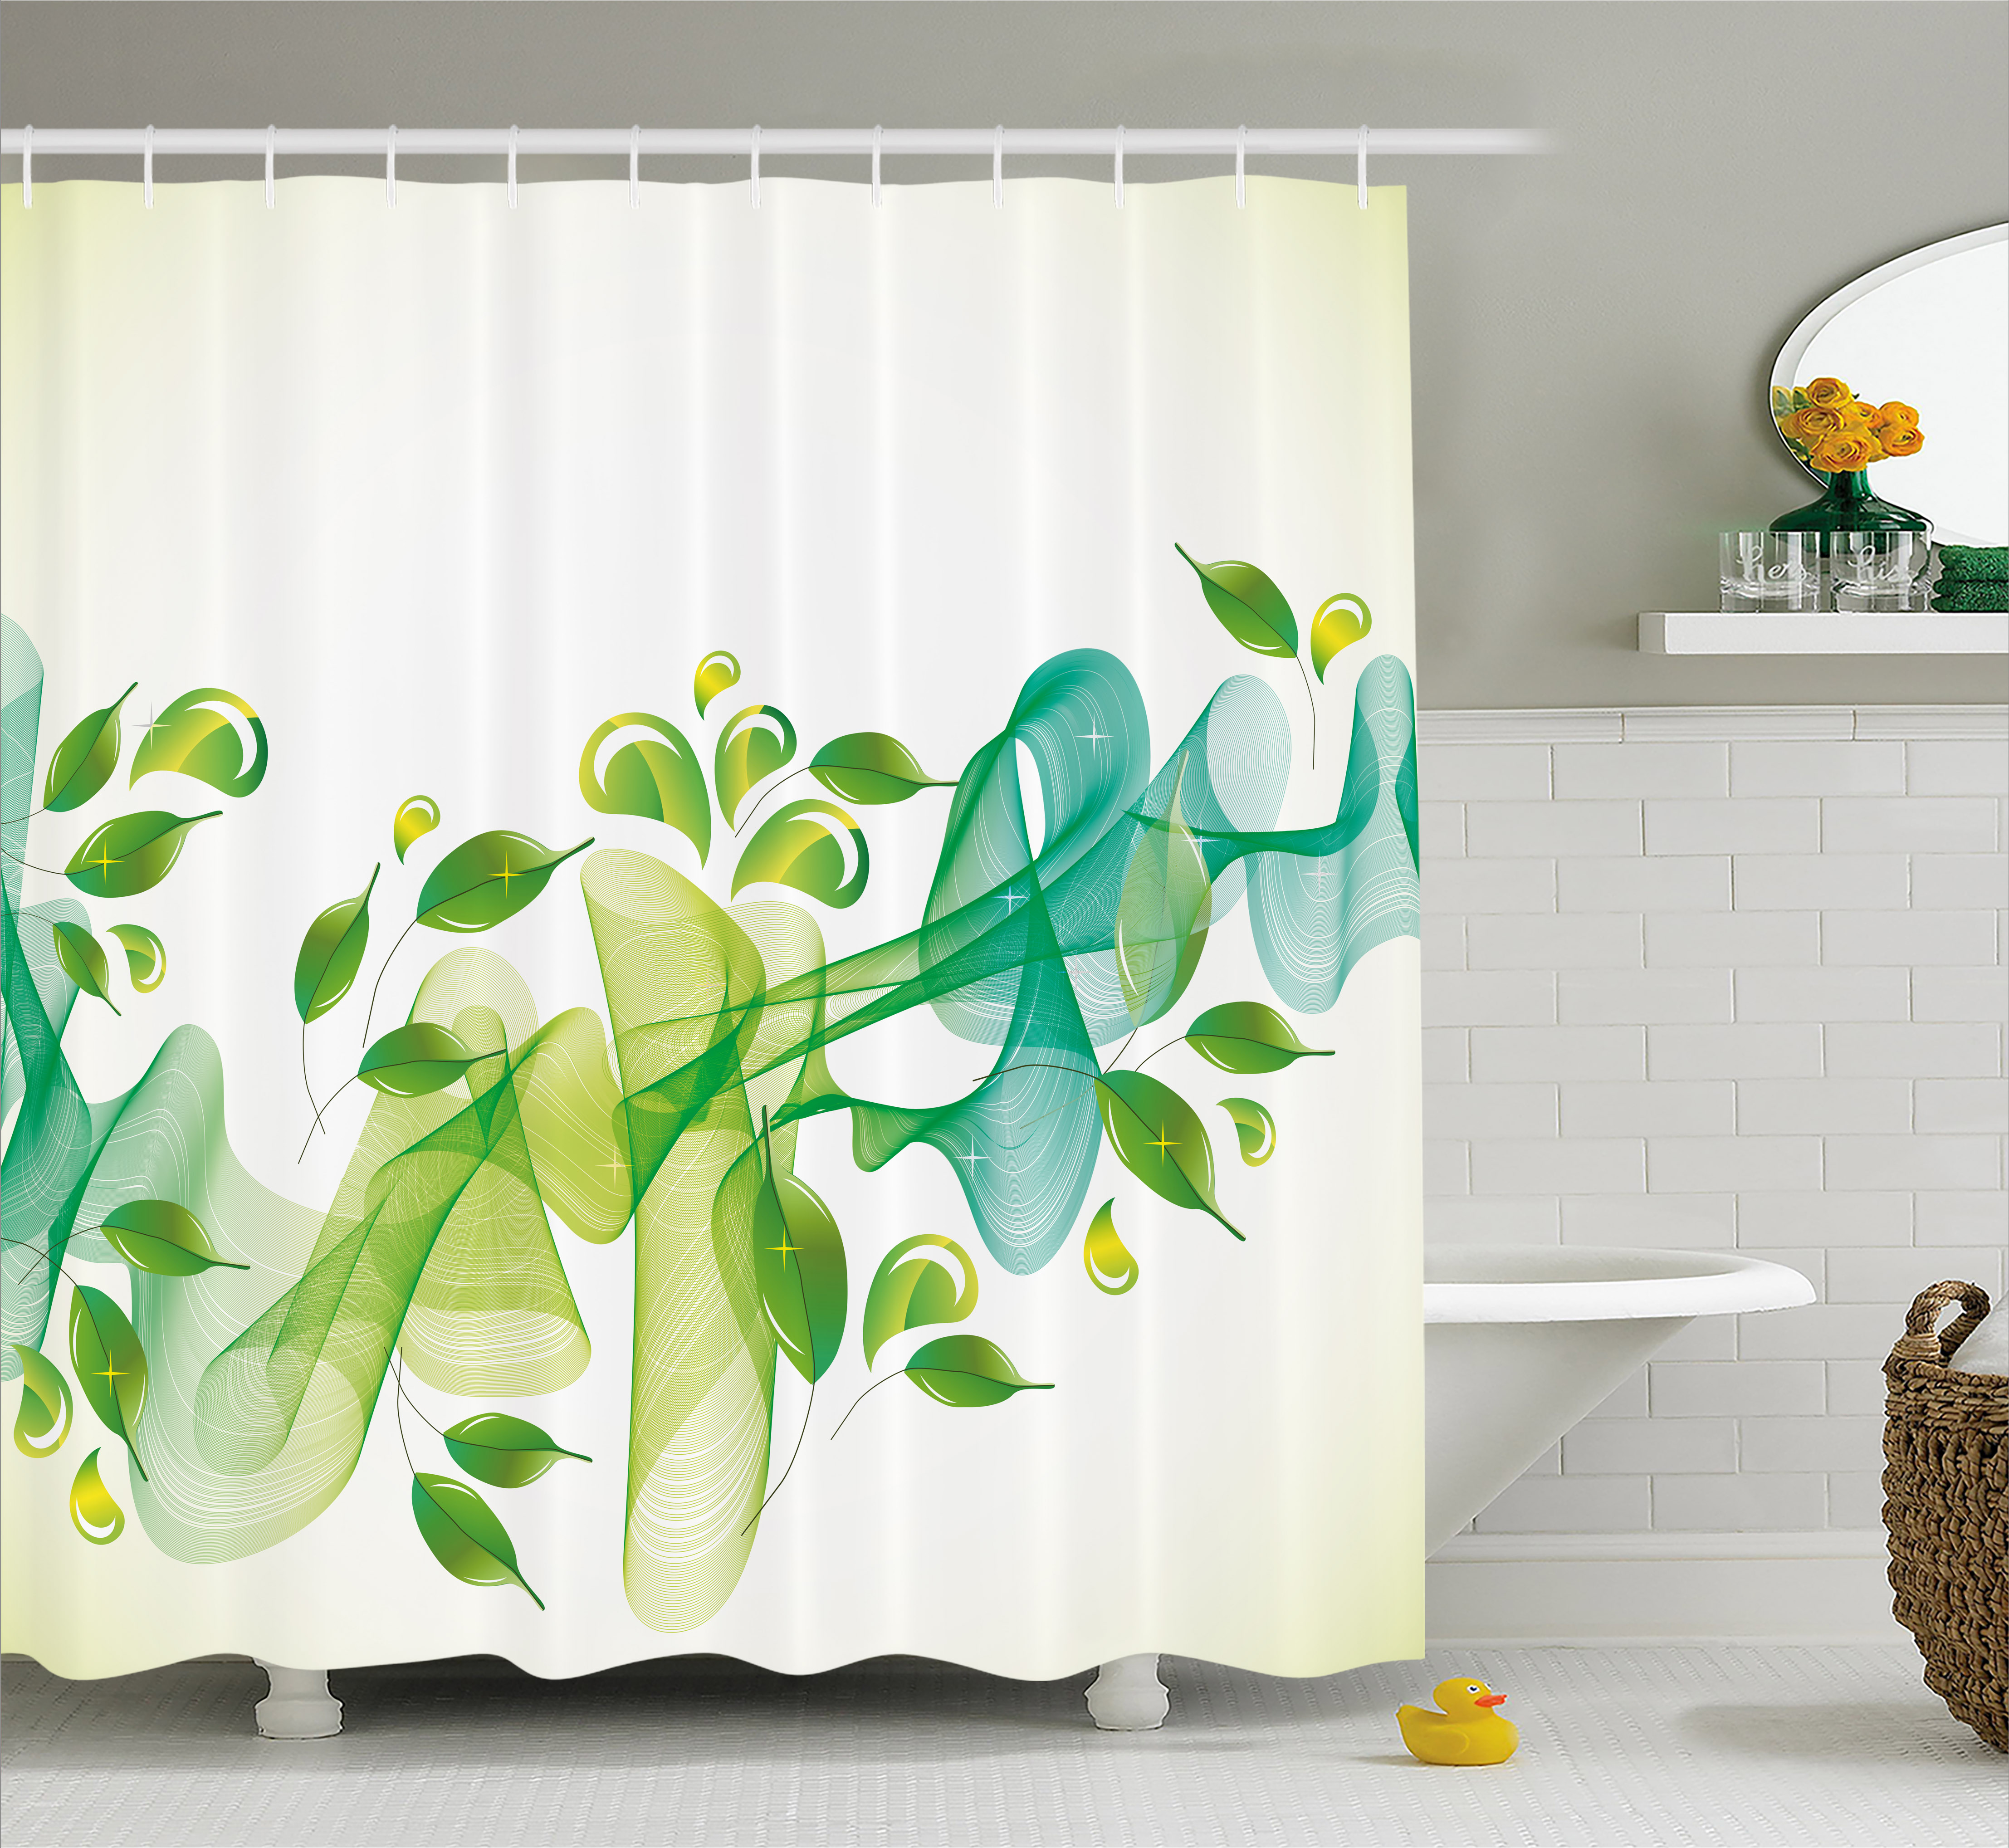 Abstract Shower Curtain Floral Design With Water Touch Inspired Modern Artistic Details Artwork Fabric Bathroom Set With Hooks Yellow Green And